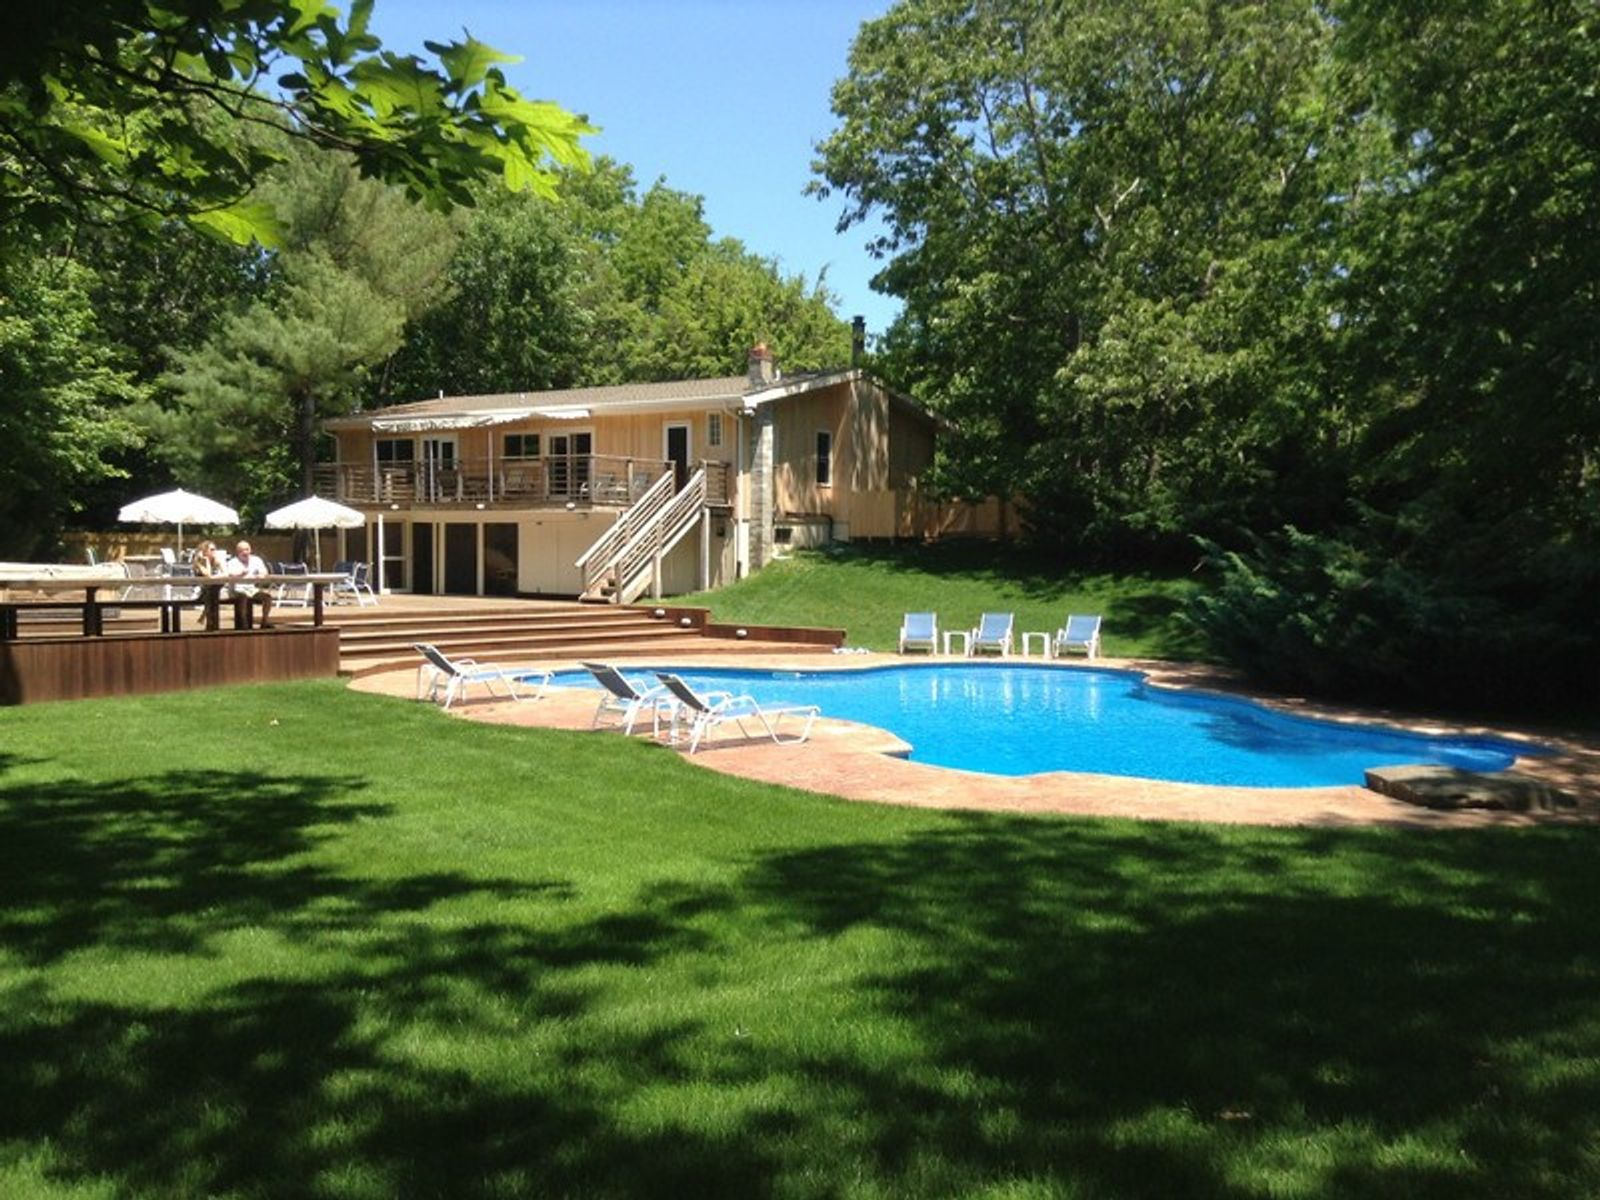 Turnkey Renovated Water Mill Home w/Pool, Water Mill NY Single Family Home - Hamptons Real Estate